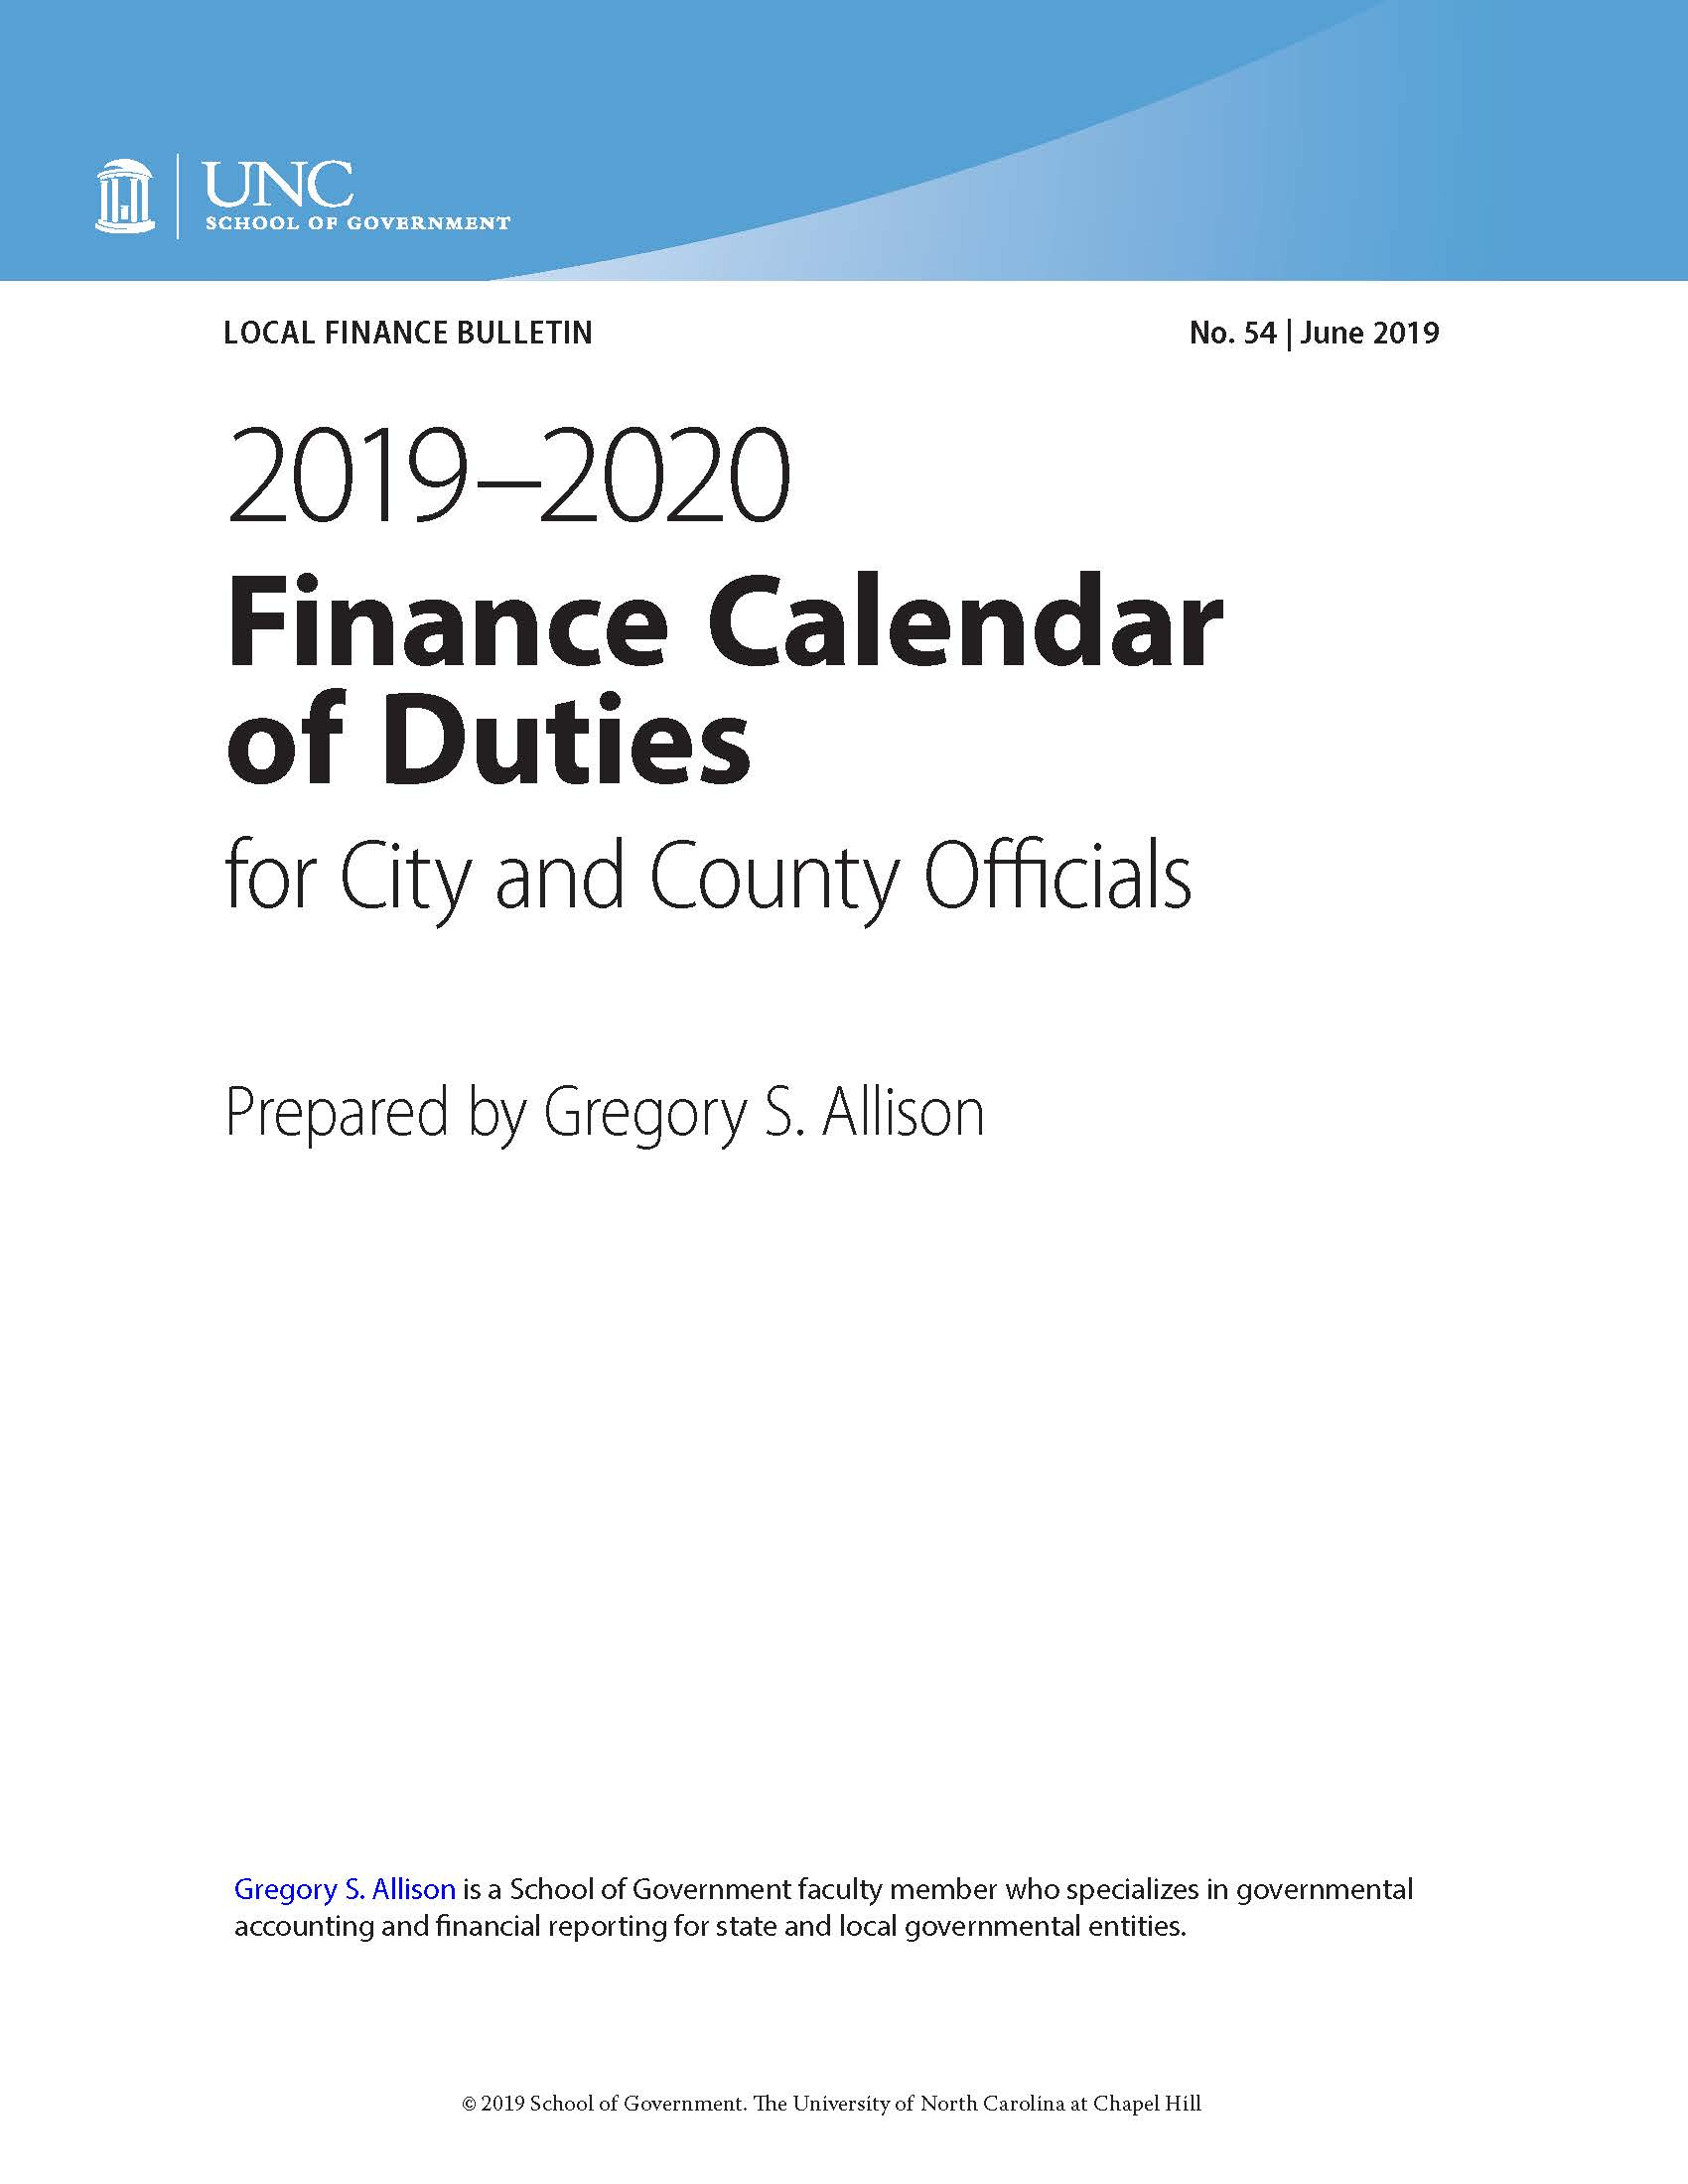 Unc Calendar 2020 2019 2020 Finance Calendar of Duties for City and County Officials